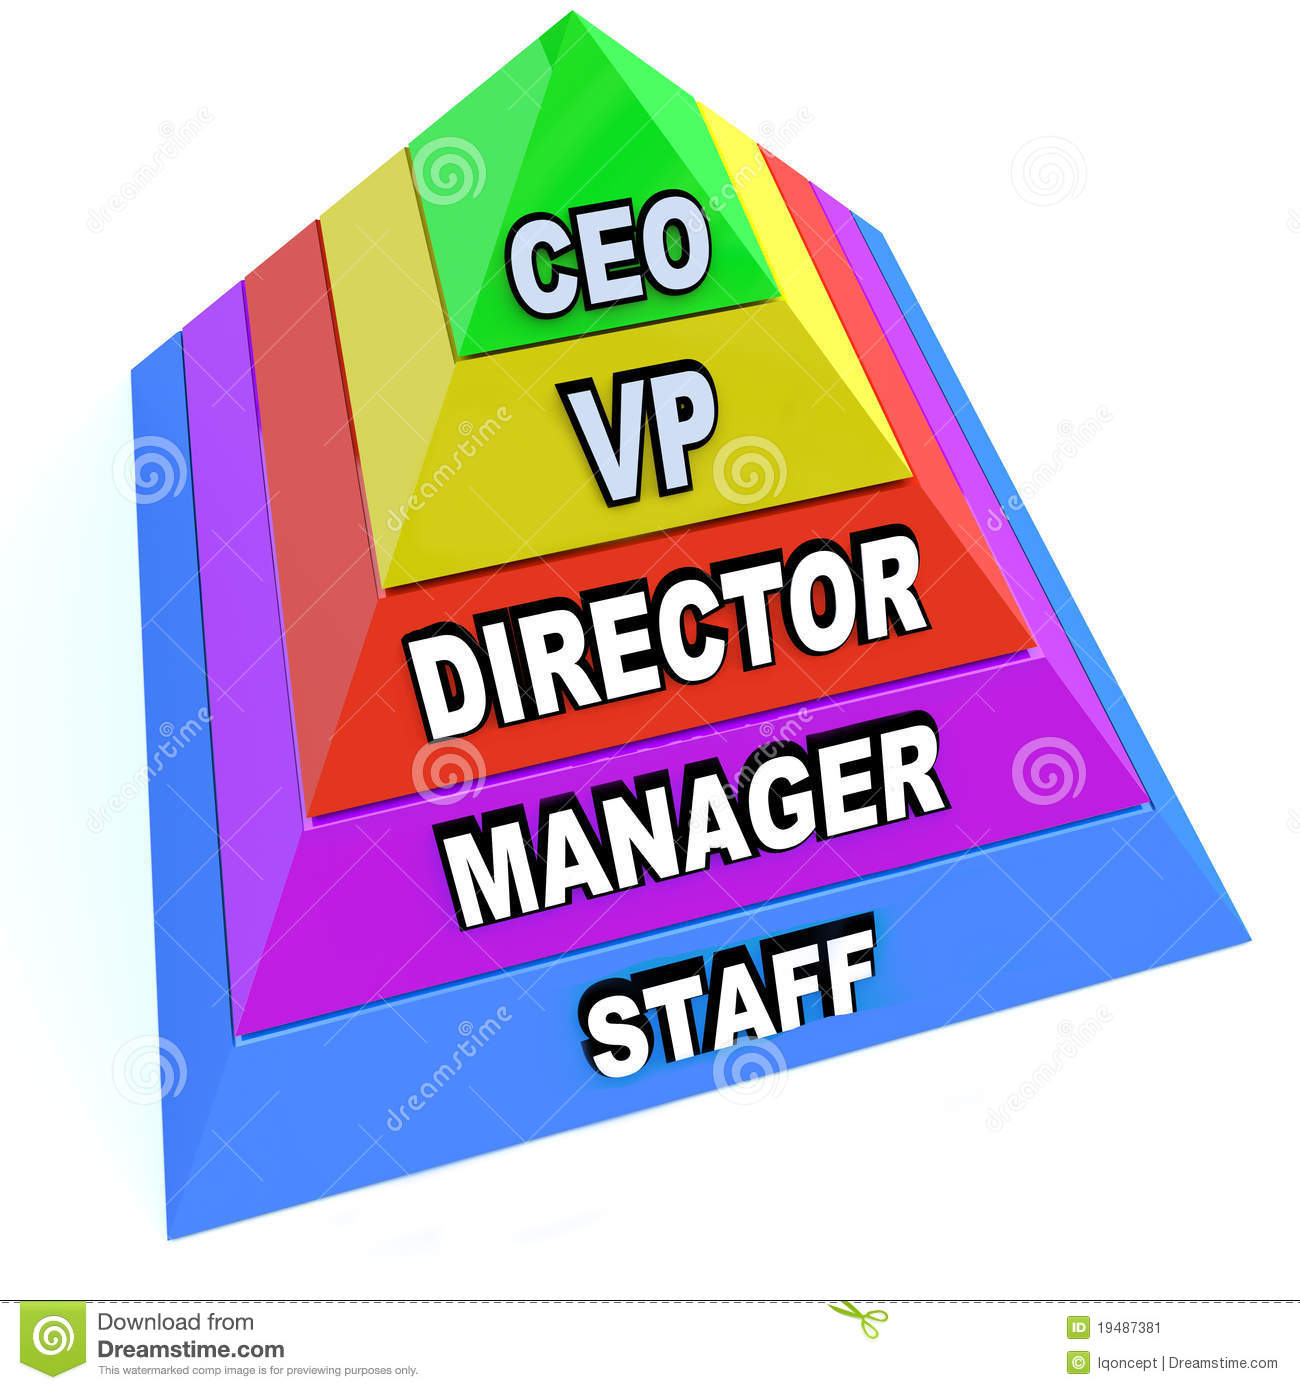 Pyramid Of Chain Of Command Levels In Organization Stock Image - Image ...